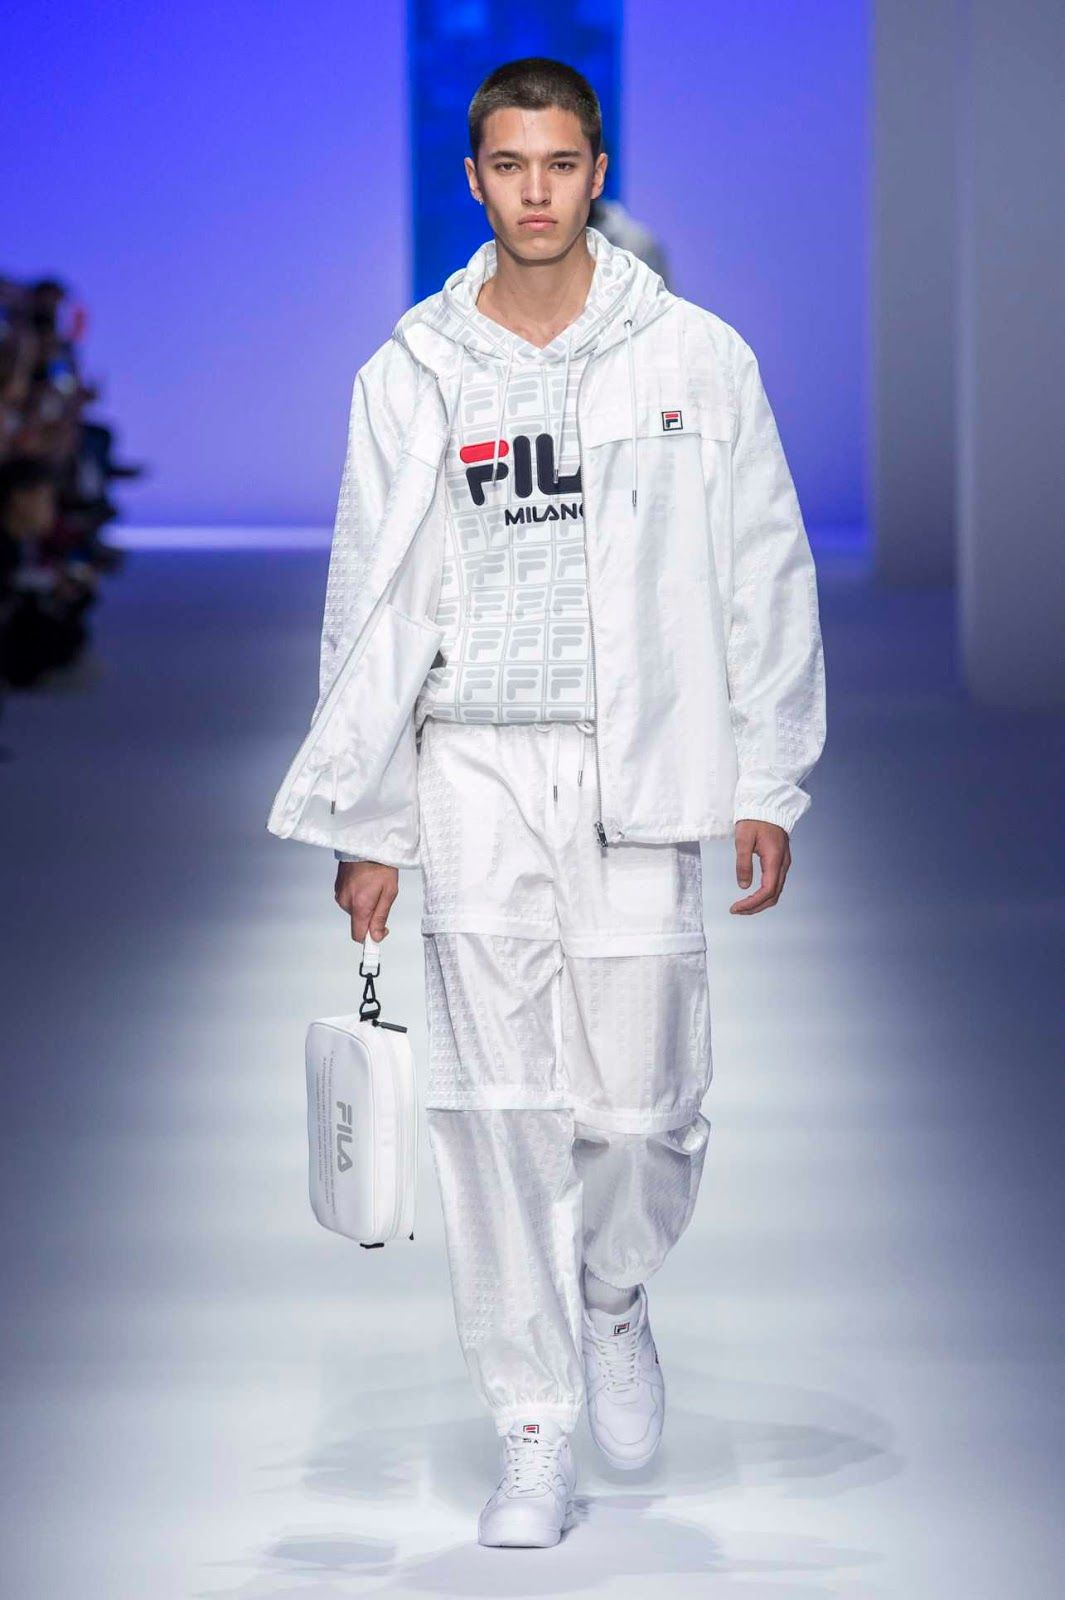 Fila Spring-Summer 2019 Runway Show | Eggy | Fashion, Mens ...